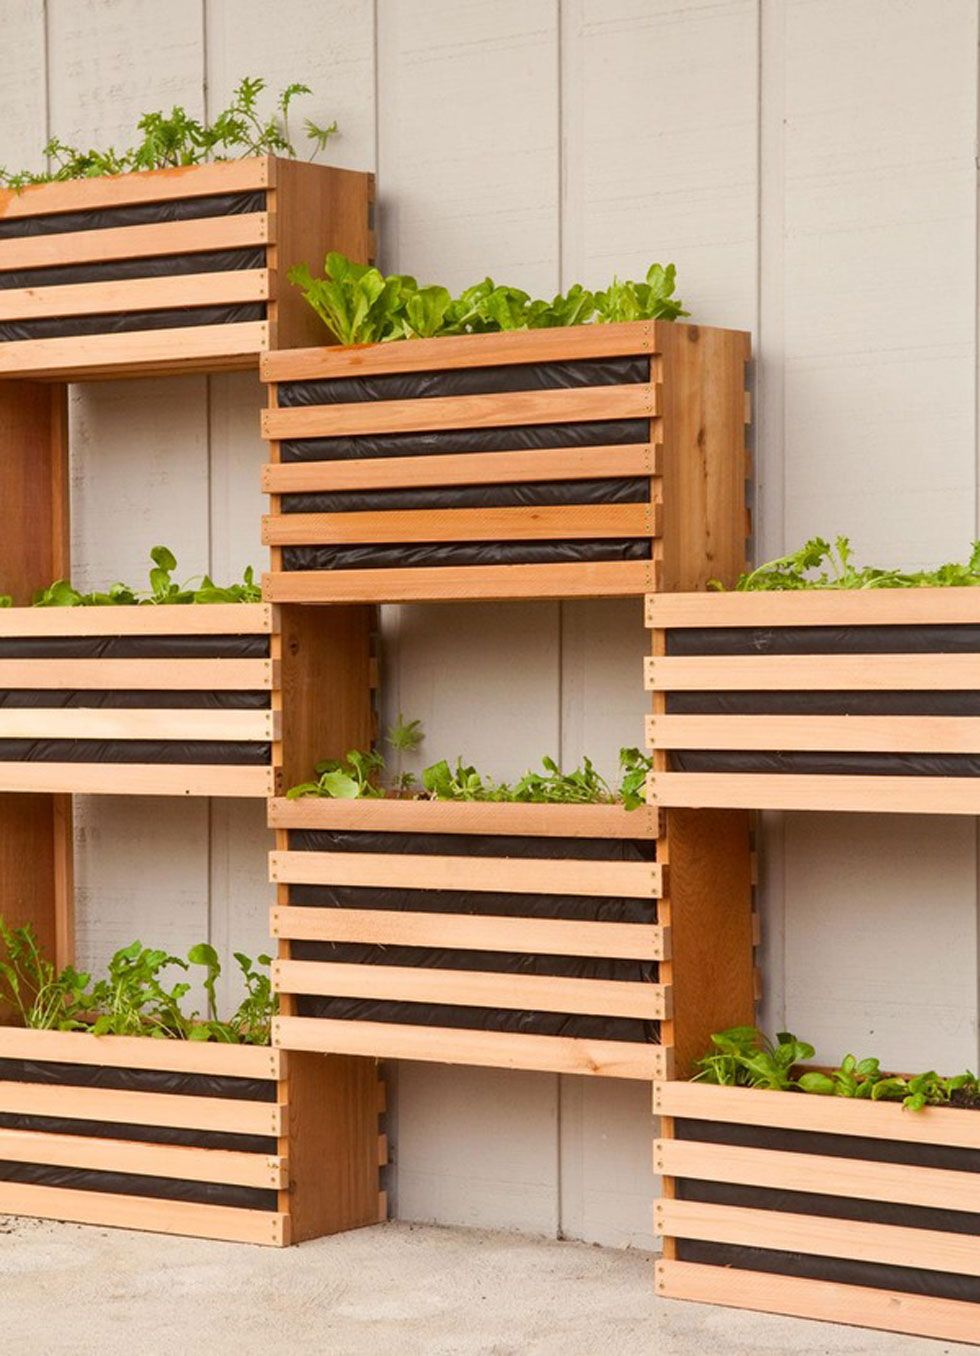 Merveilleux 26 Creative Ways To Plant A Vertical Garden   How To Make A Vertical Garden